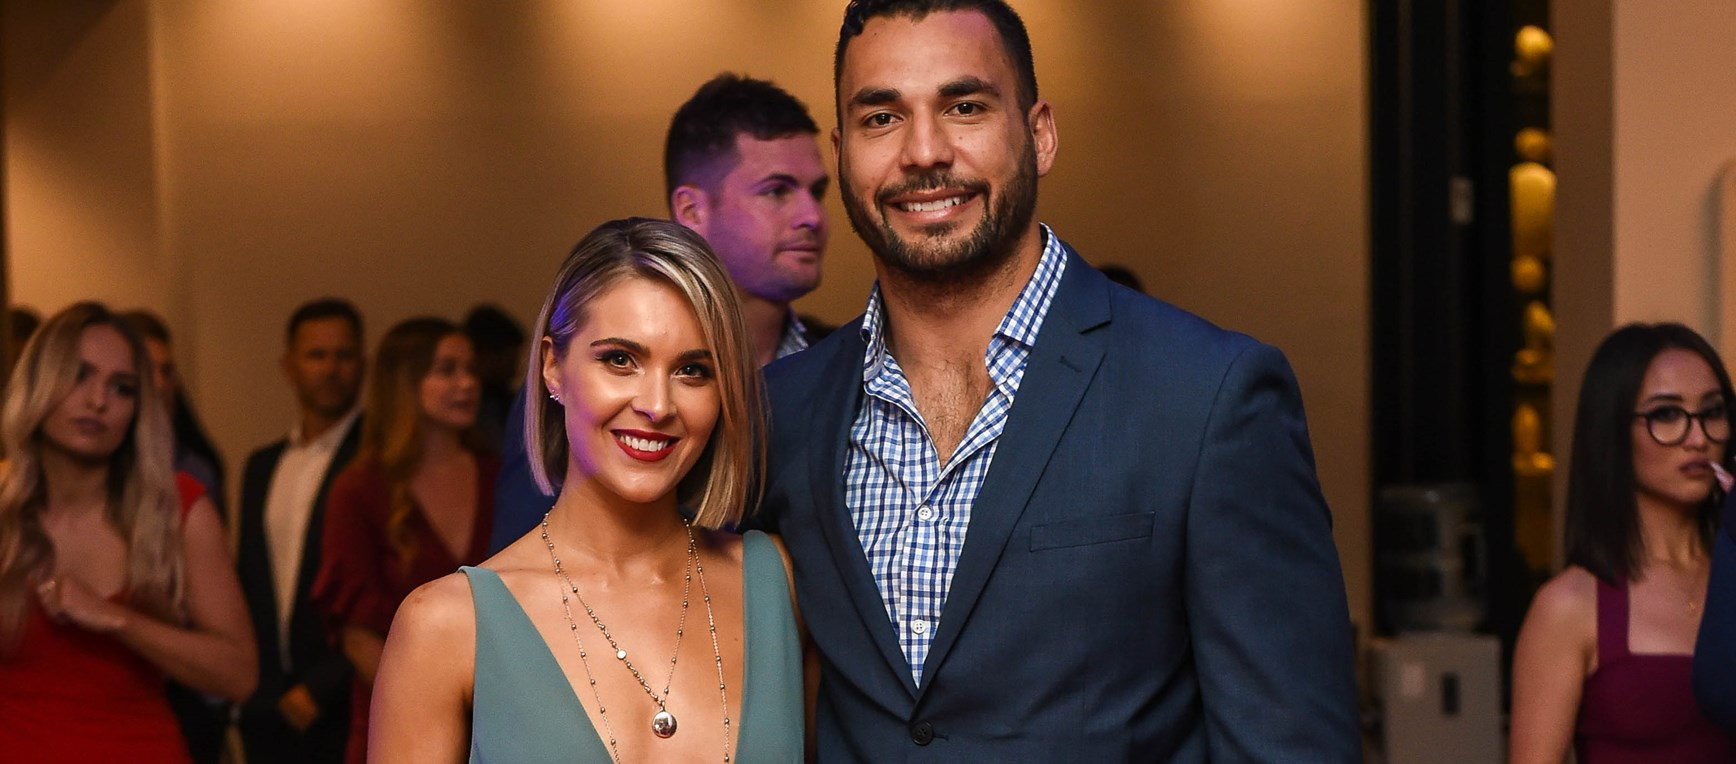 GALLERY: Titans Awards Night Red Carpet